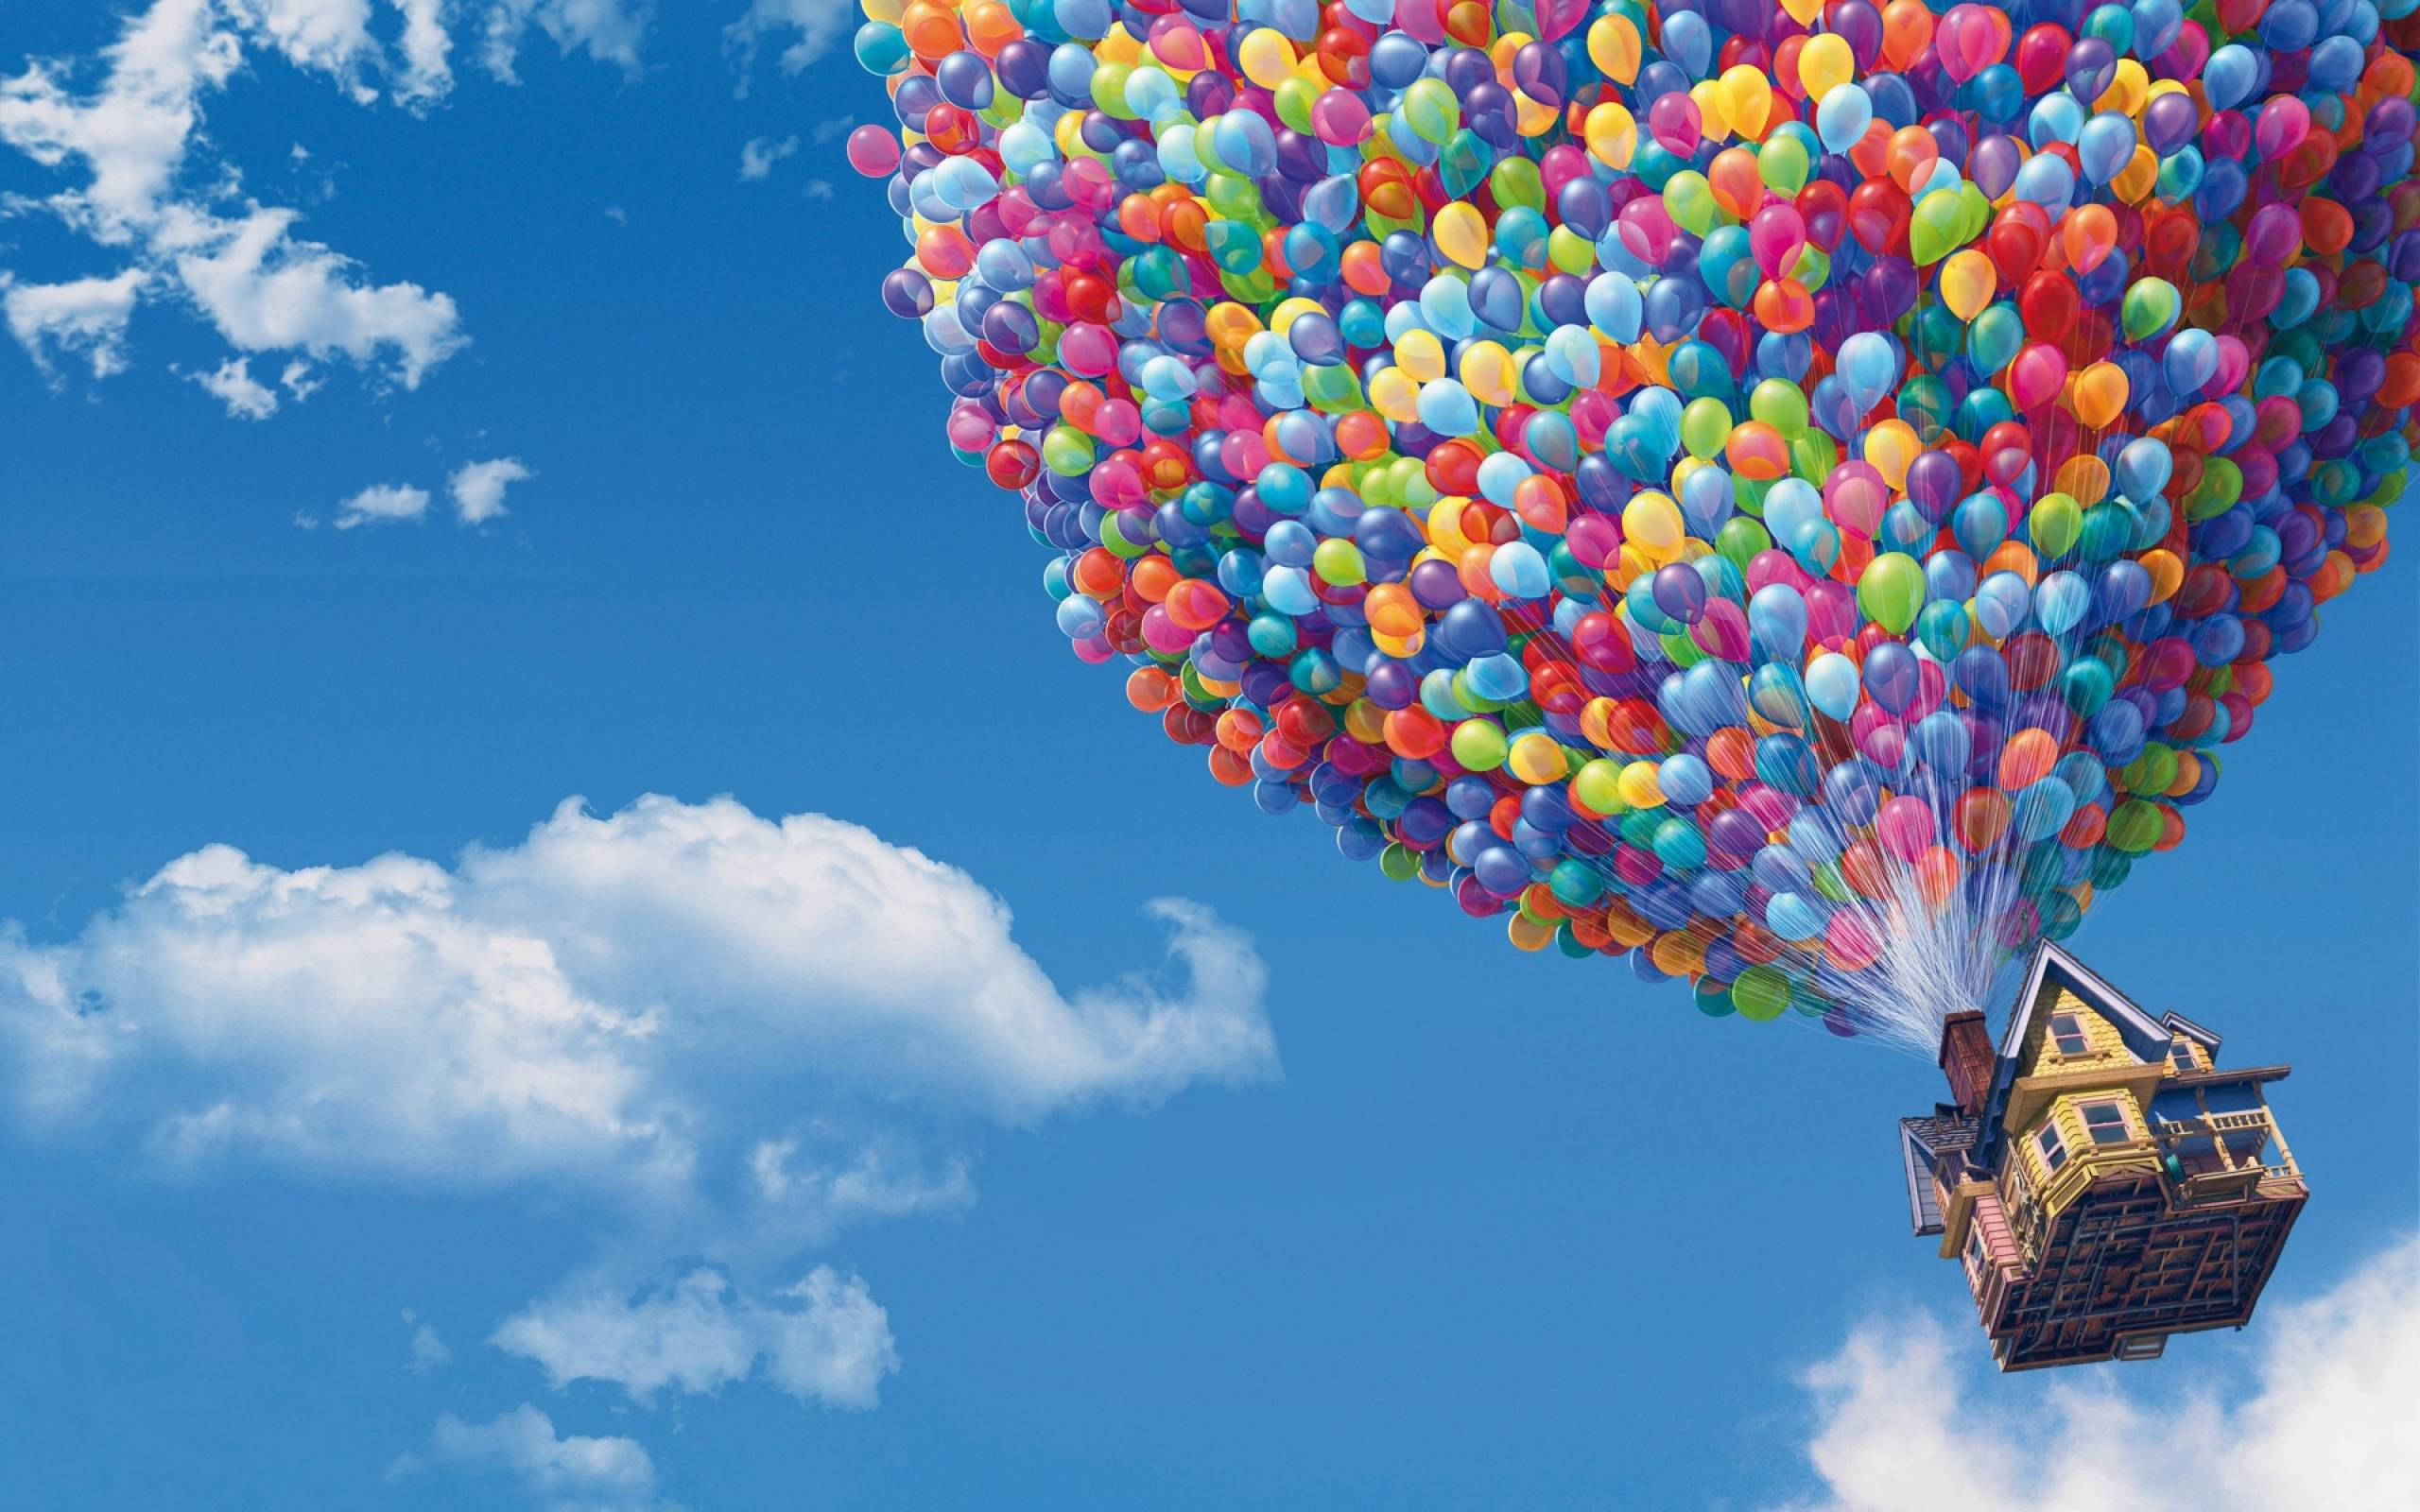 Disney Pixar Wallpapers - Full HD wallpaper search